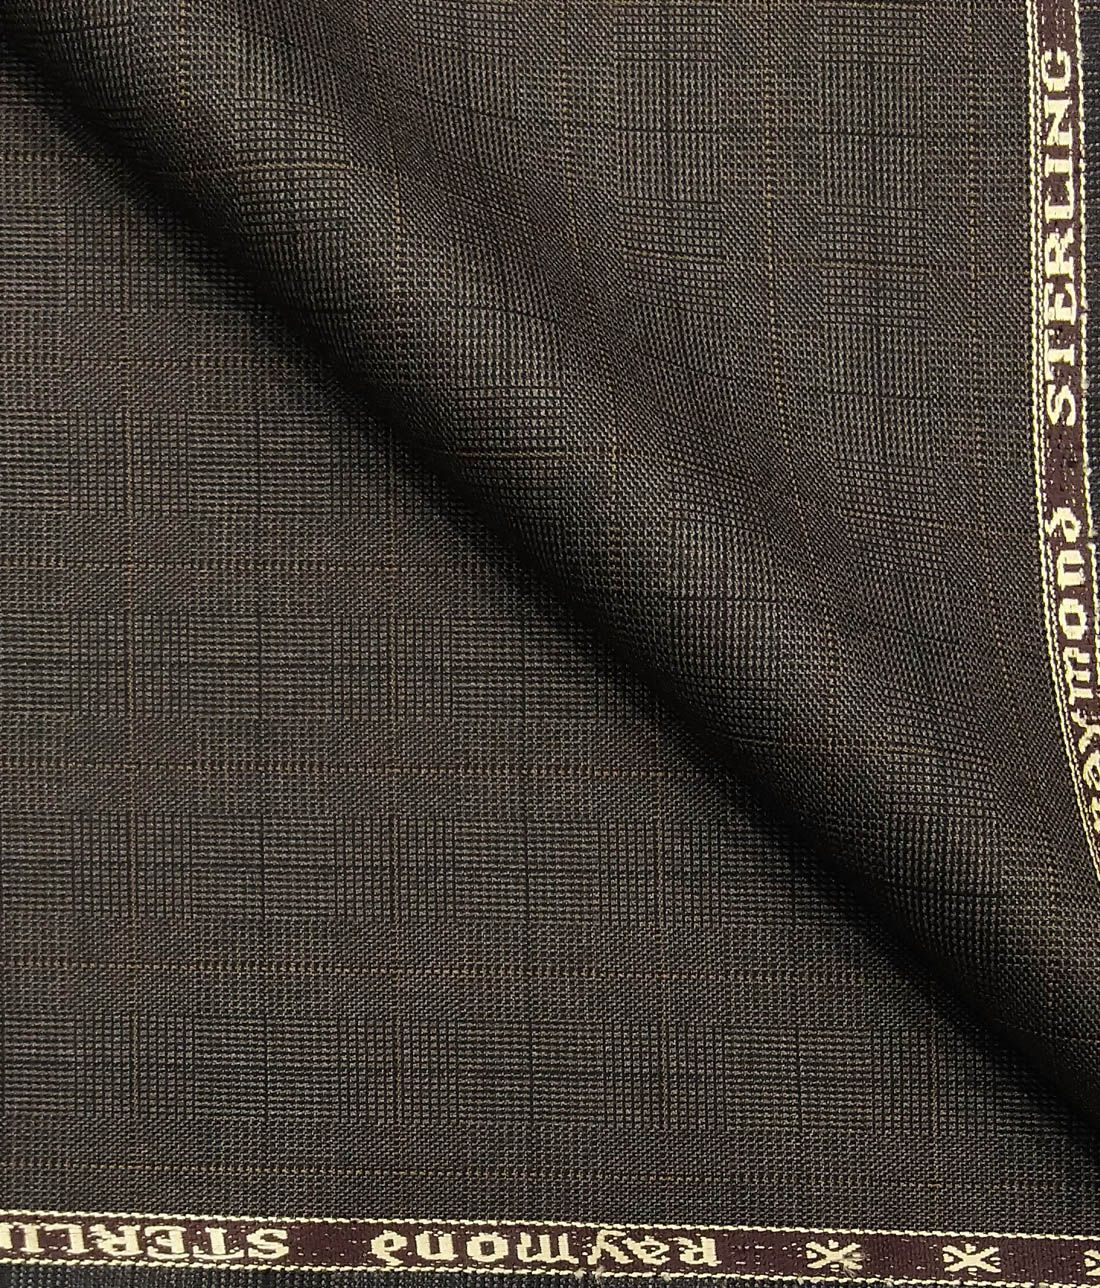 ffb11f292 Combo of Raymond Dark Brown Self Checks Trouser Fabric With Exquisite  Off-White Cotton Blend Shirt Fabric (Unstitched)